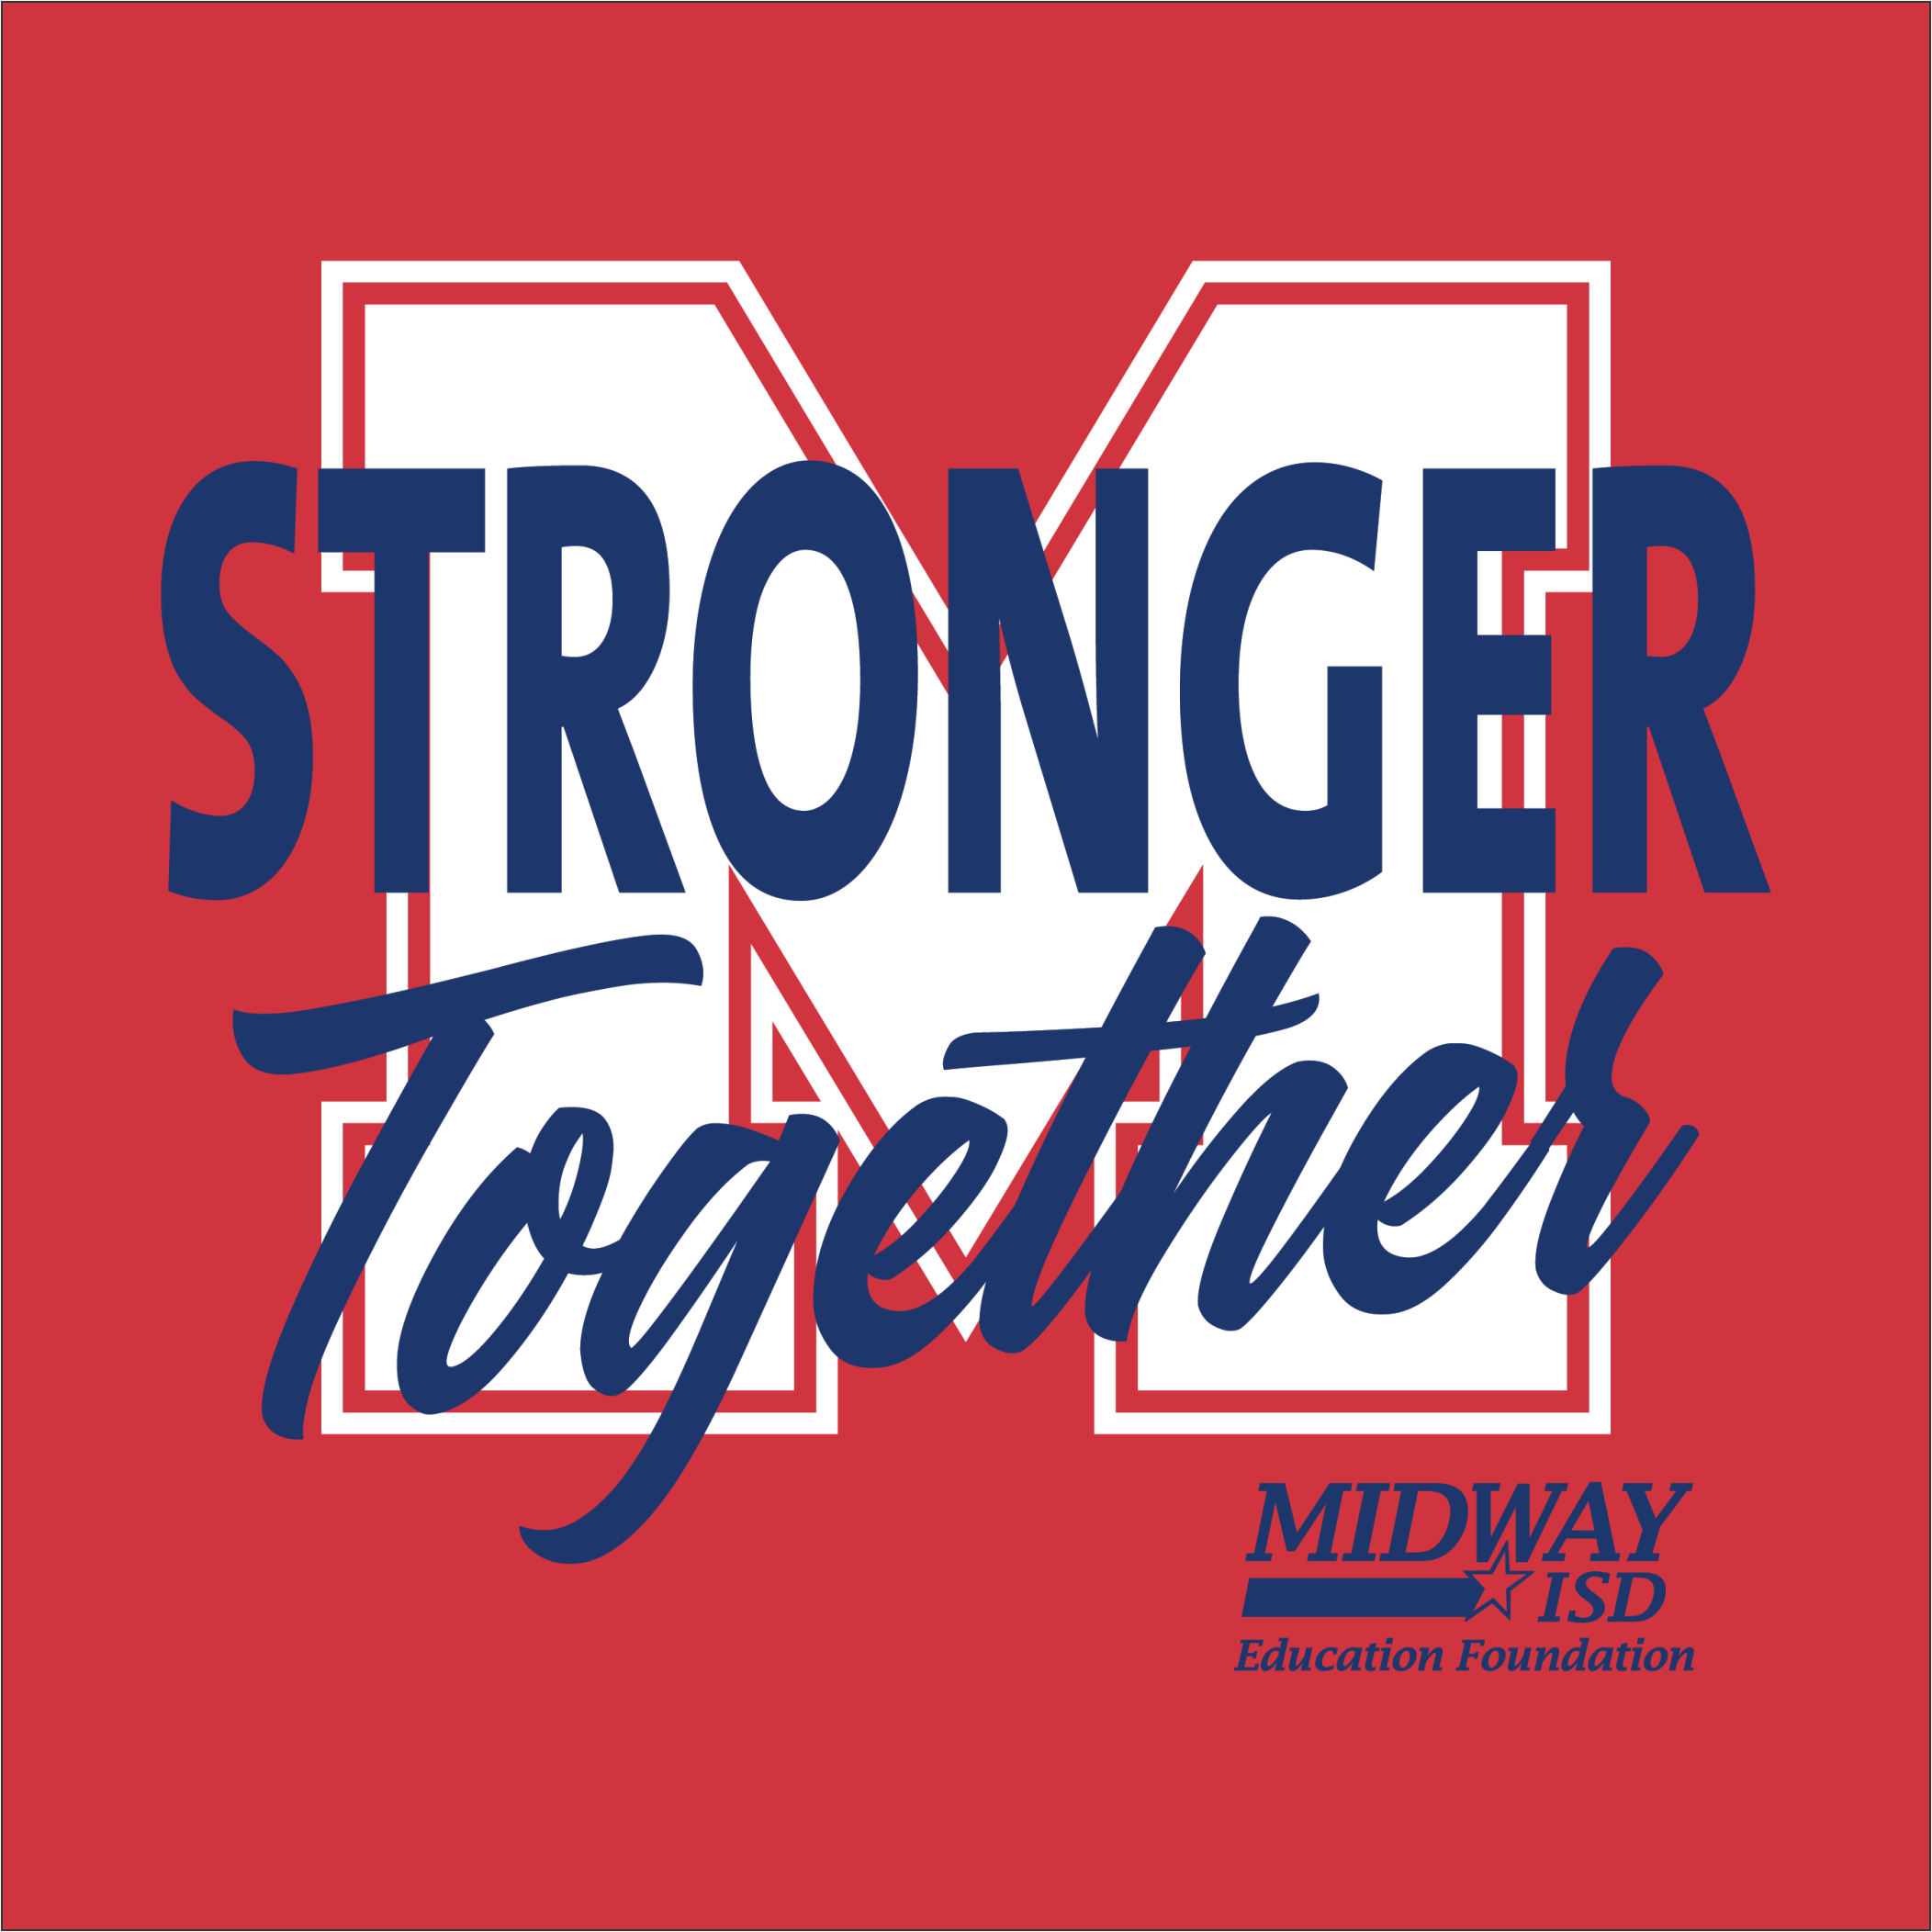 2020 Midway ISD Education Foundation Annual Campaign